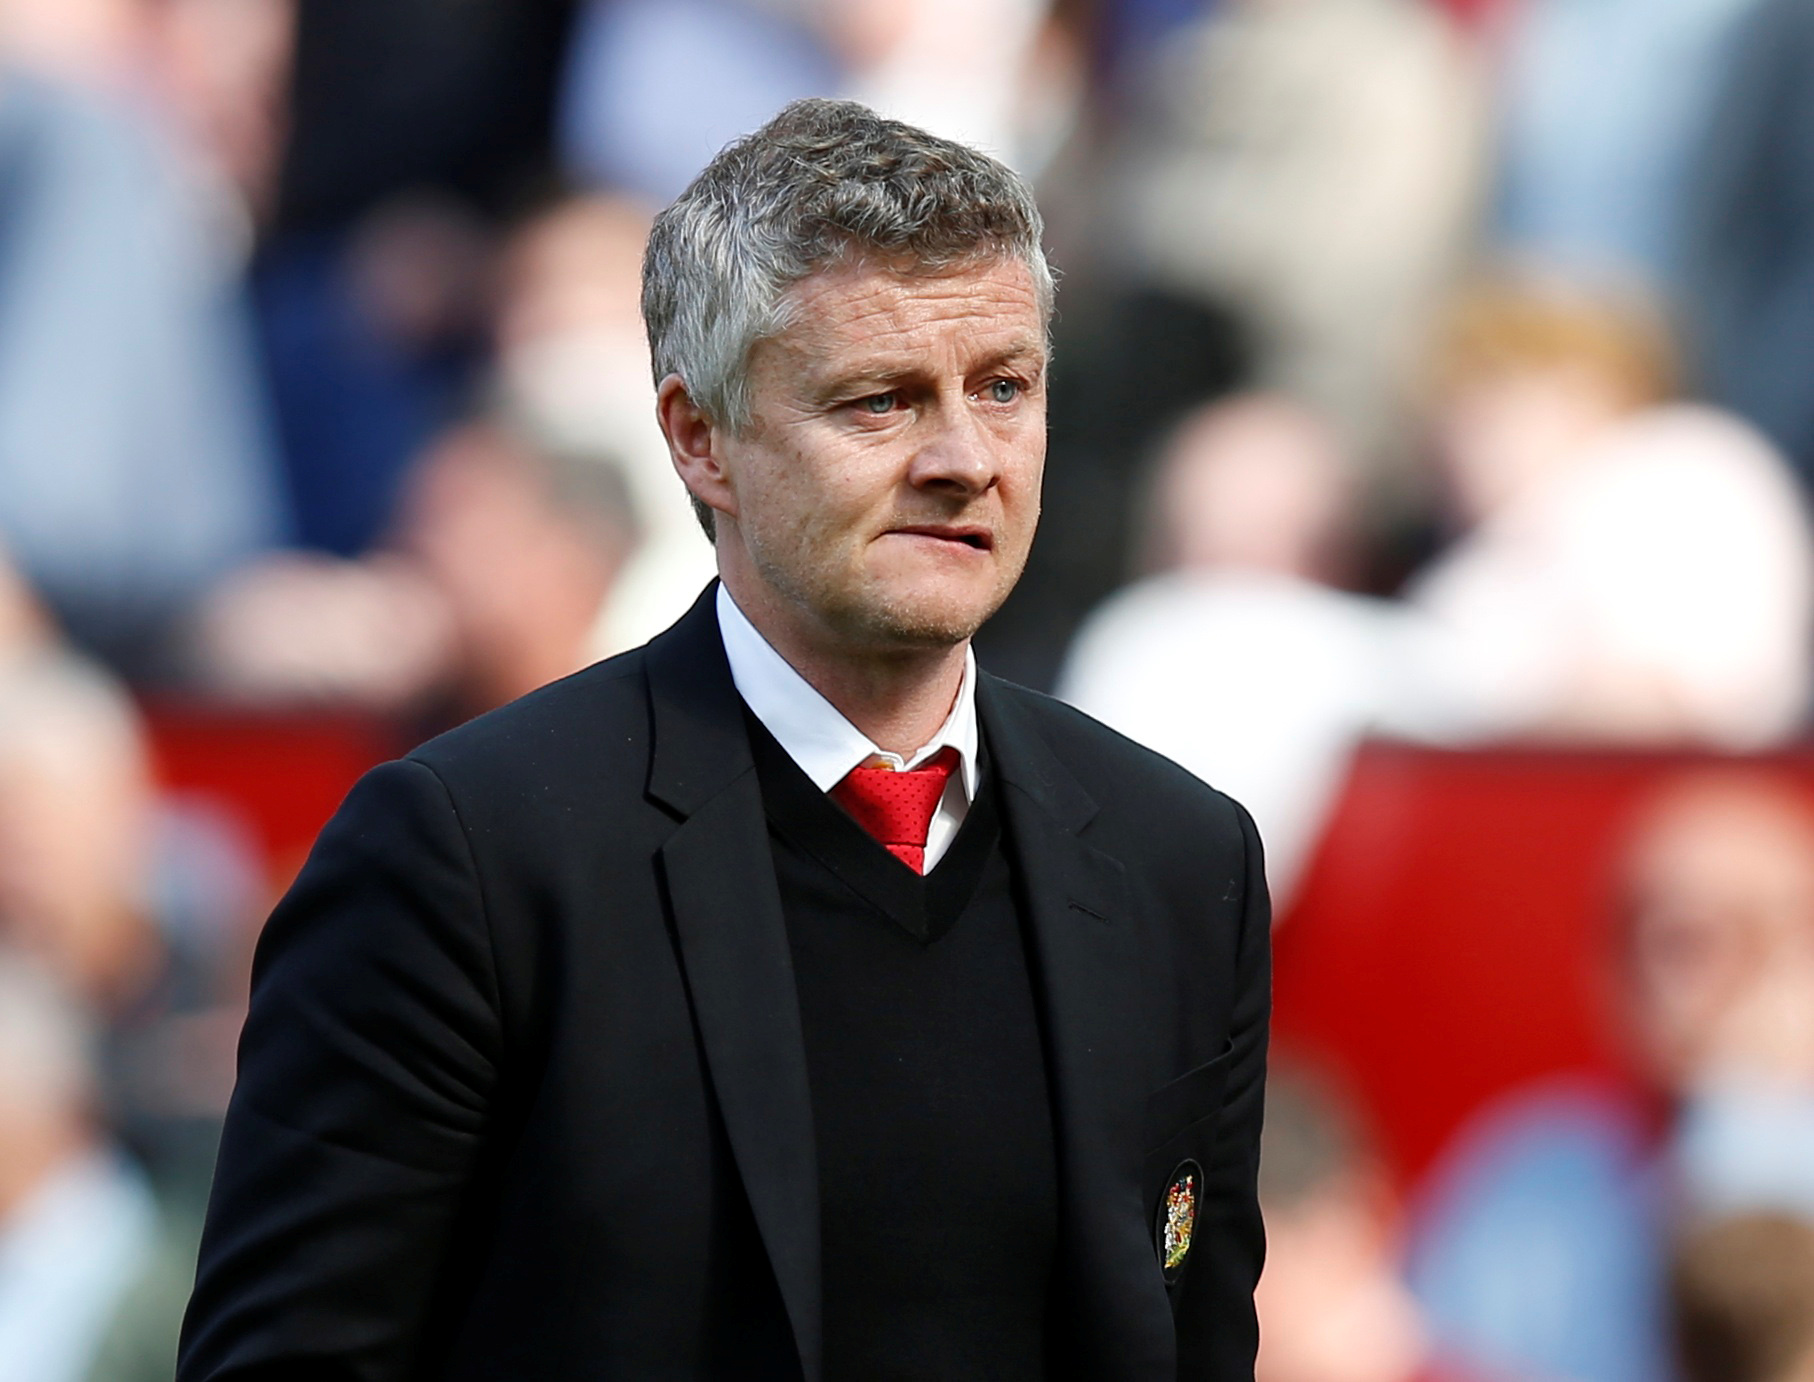 Soccer Football - Premier League - Manchester United v Cardiff City - Old Trafford, Manchester, Britain - May 12, 2019  Manchester United manager Ole Gunnar Solskjaer reacts during the match      REUTERS/Andrew Yates  EDITORIAL USE ONLY. No use with unauthorized audio, video, data, fixture lists, club/league logos or